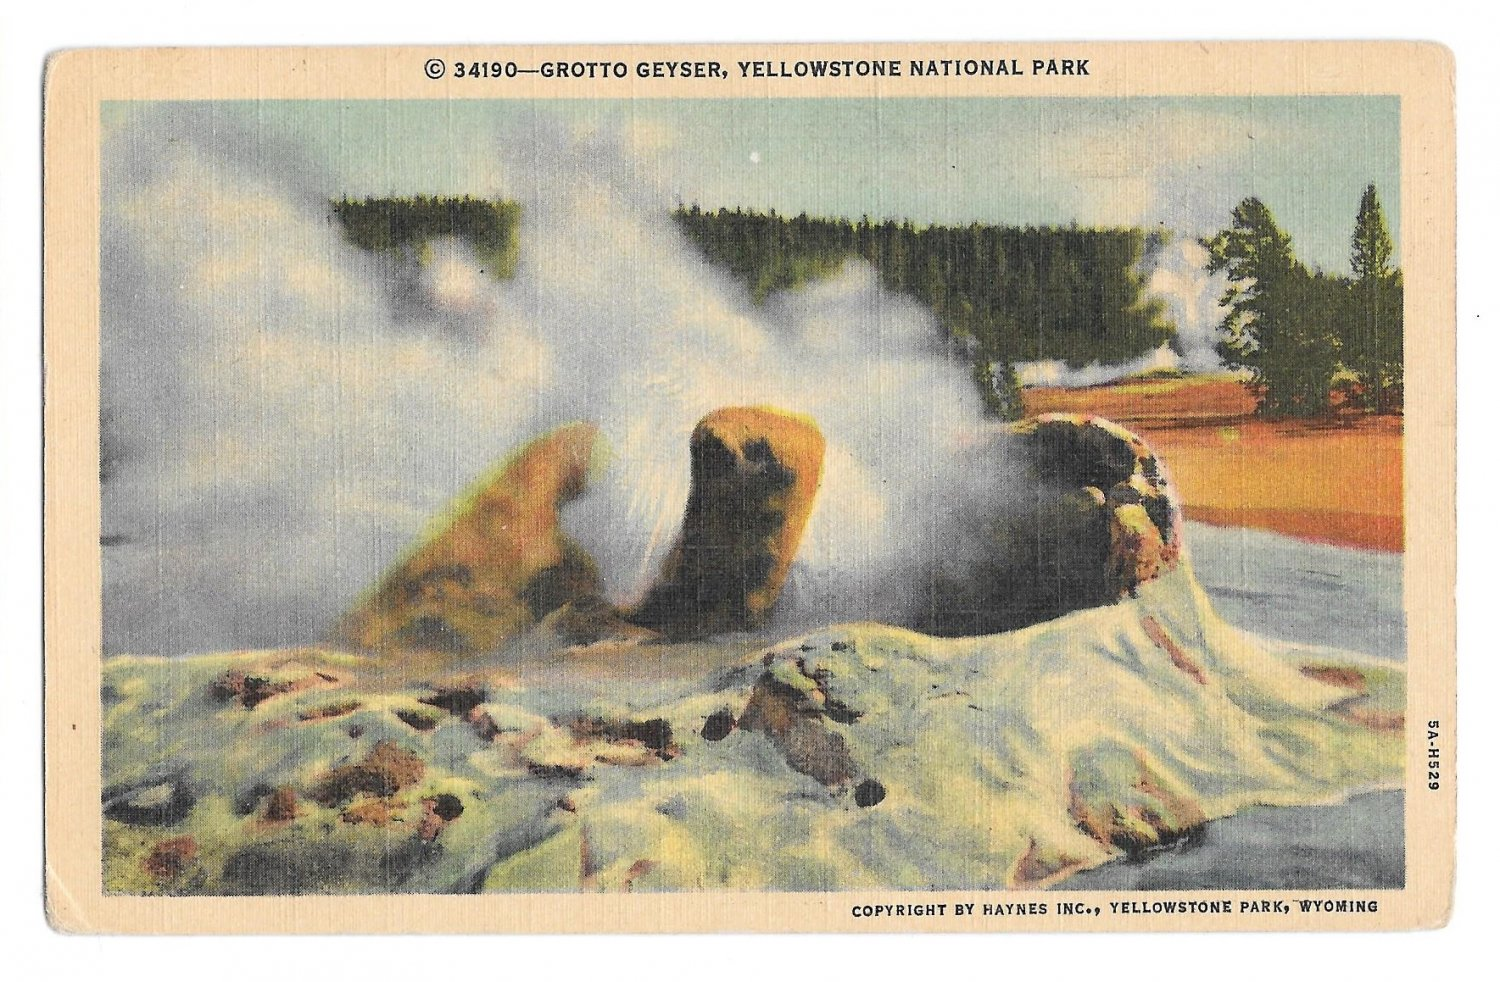 WY Yellowstone National Park Grotto Geyser Vintage Haynes Postcard